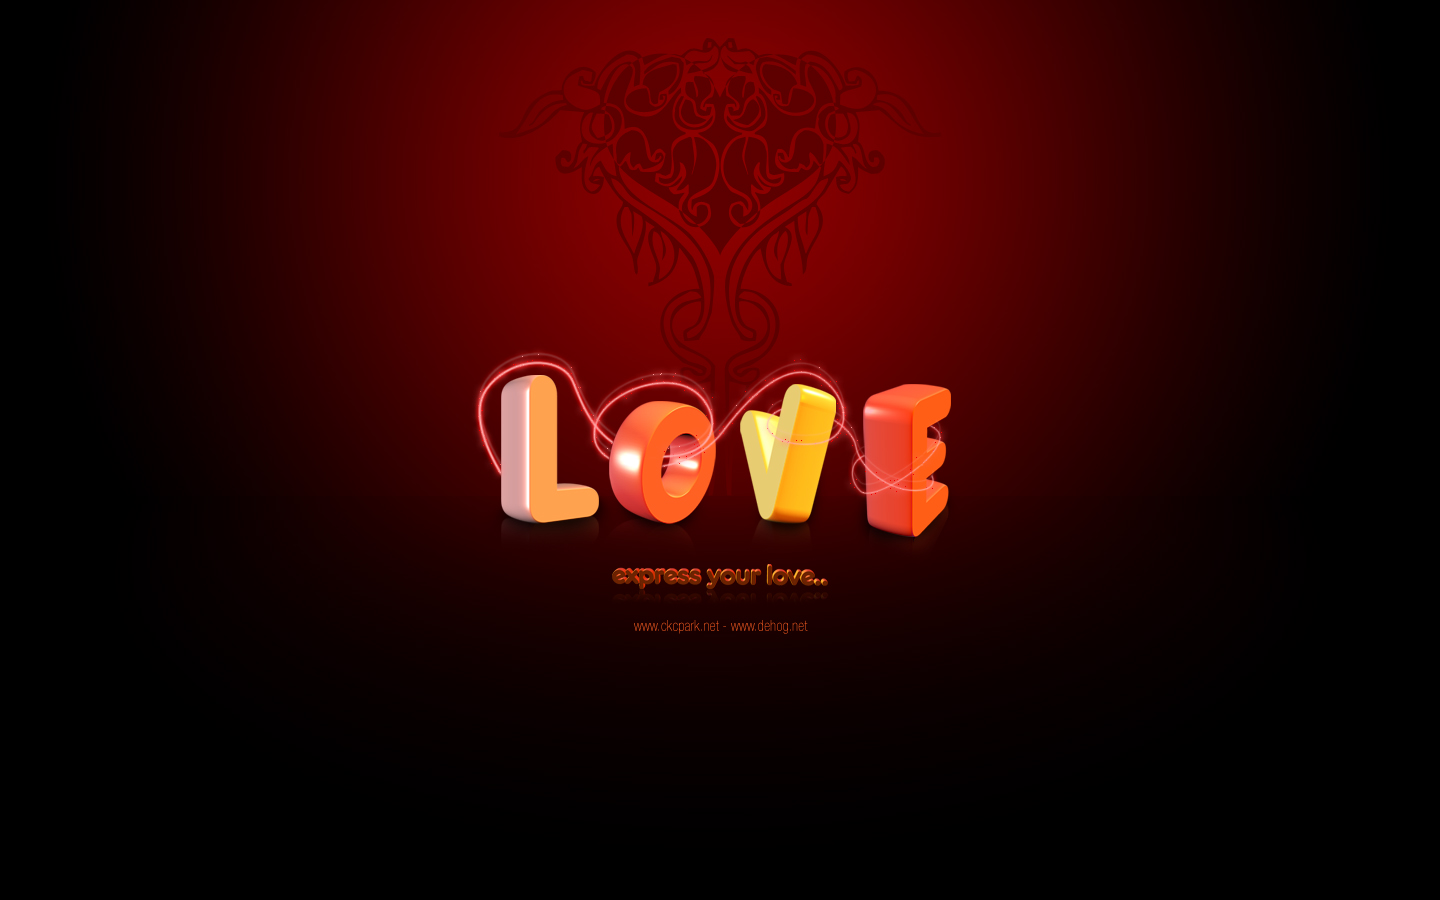 Love Desktop Wallpapers Wallpaper